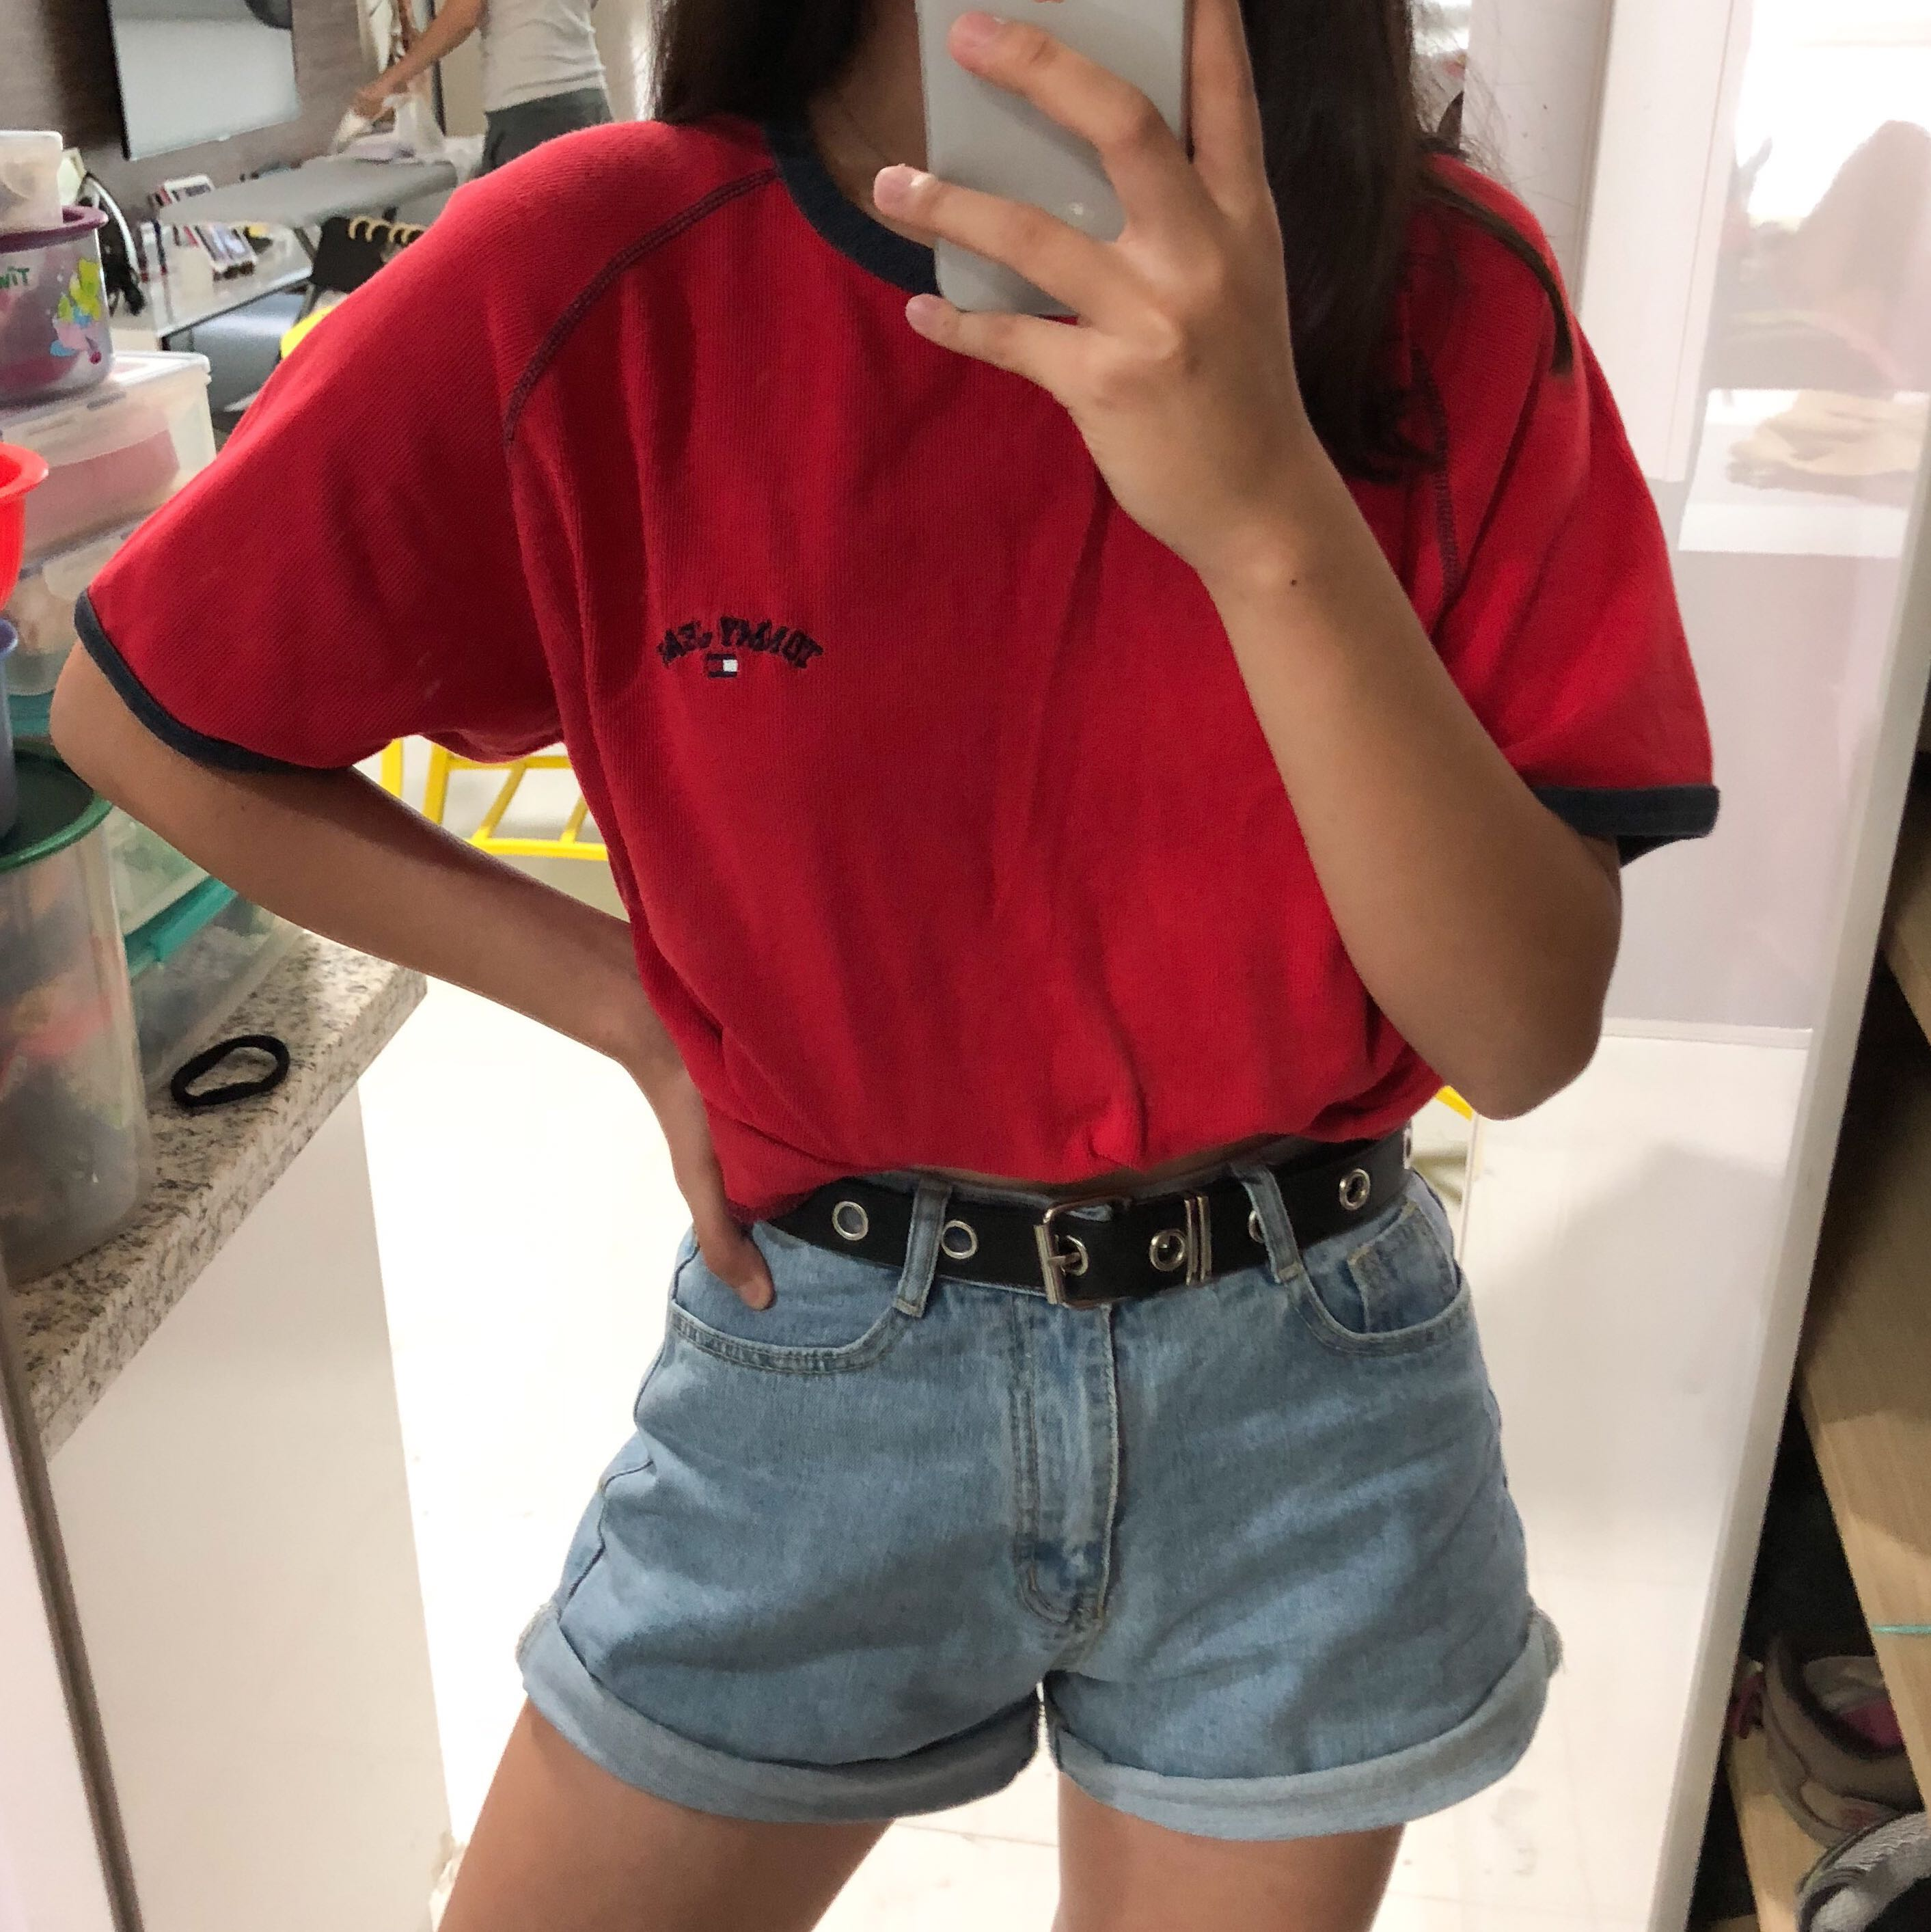 96a7a42d9 vintage red tommy jeans ringer tee, Women's Fashion, Clothes, Tops on  Carousell